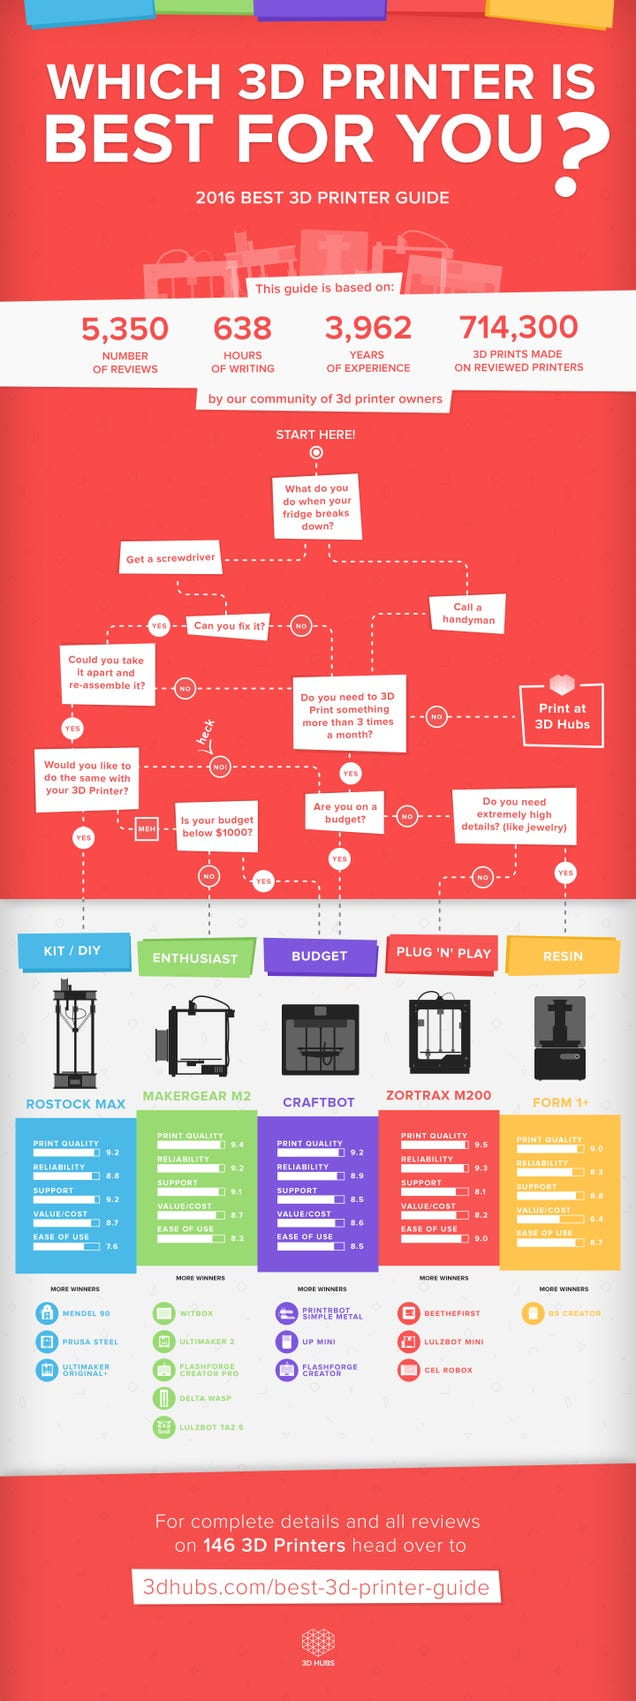 This Graphic Guides You to the Perfect 3D Printer for Your Needs